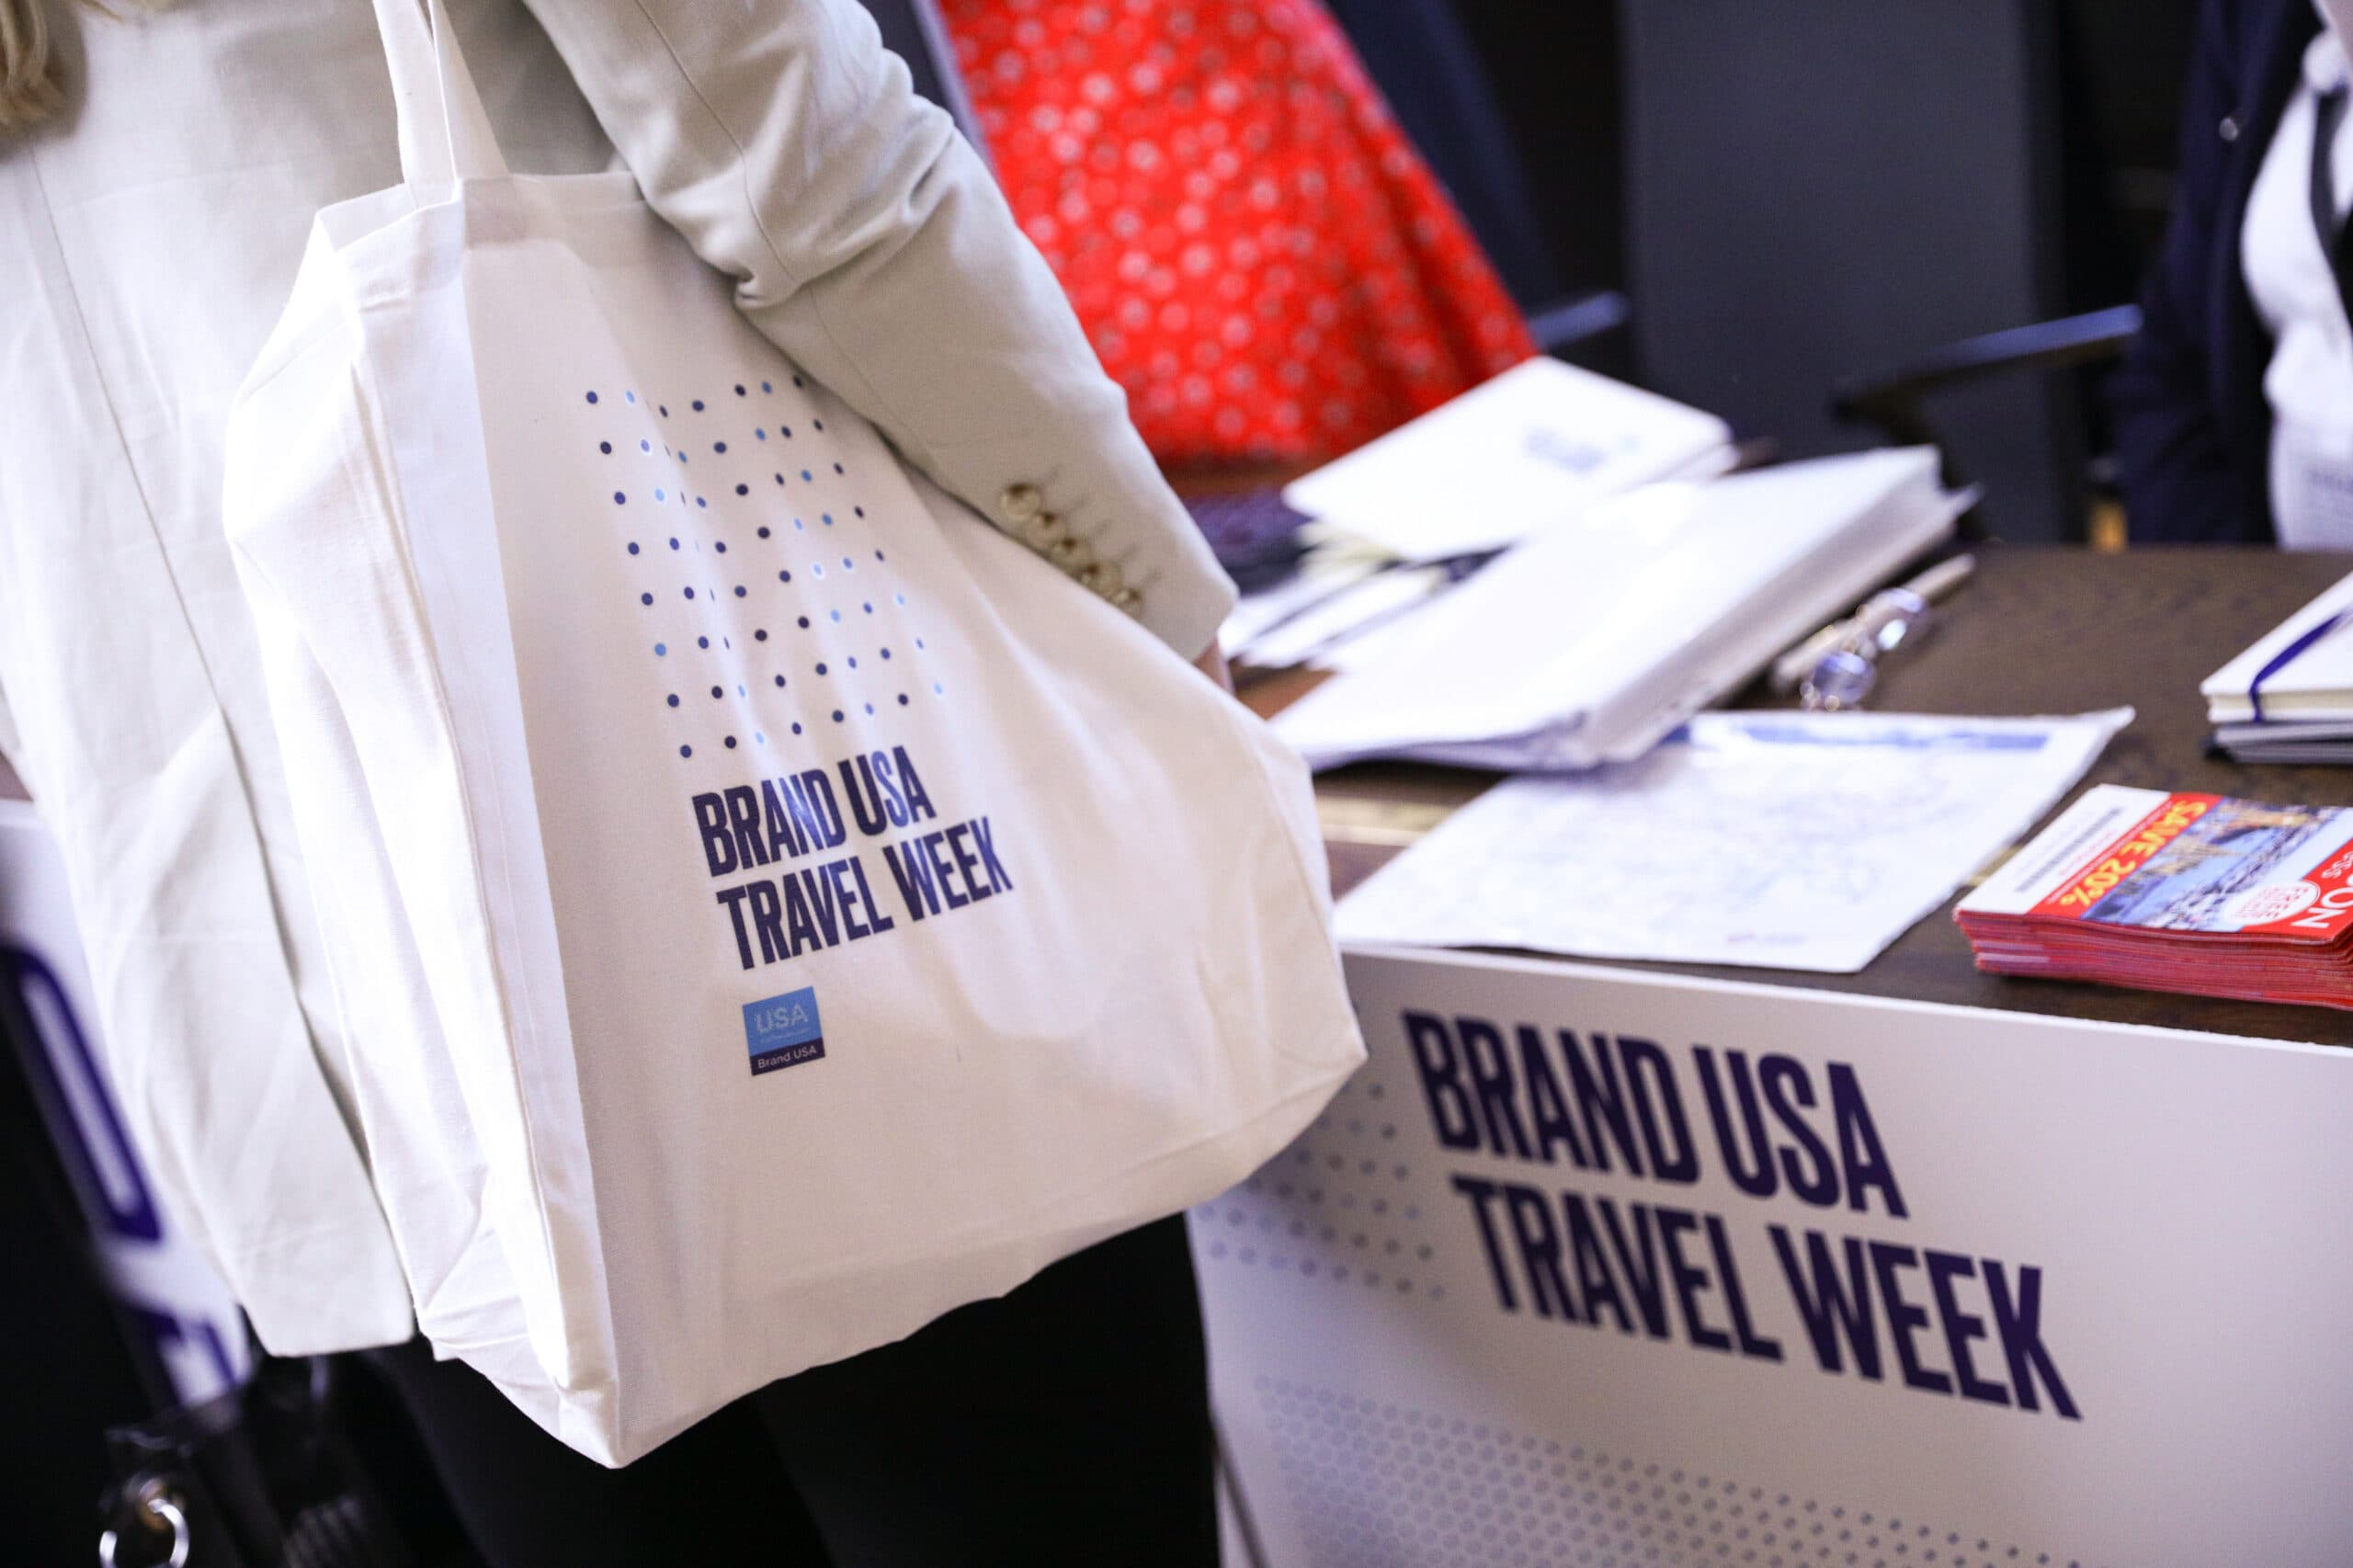 Brand-USA-Travel_Week-Bag-Citizen